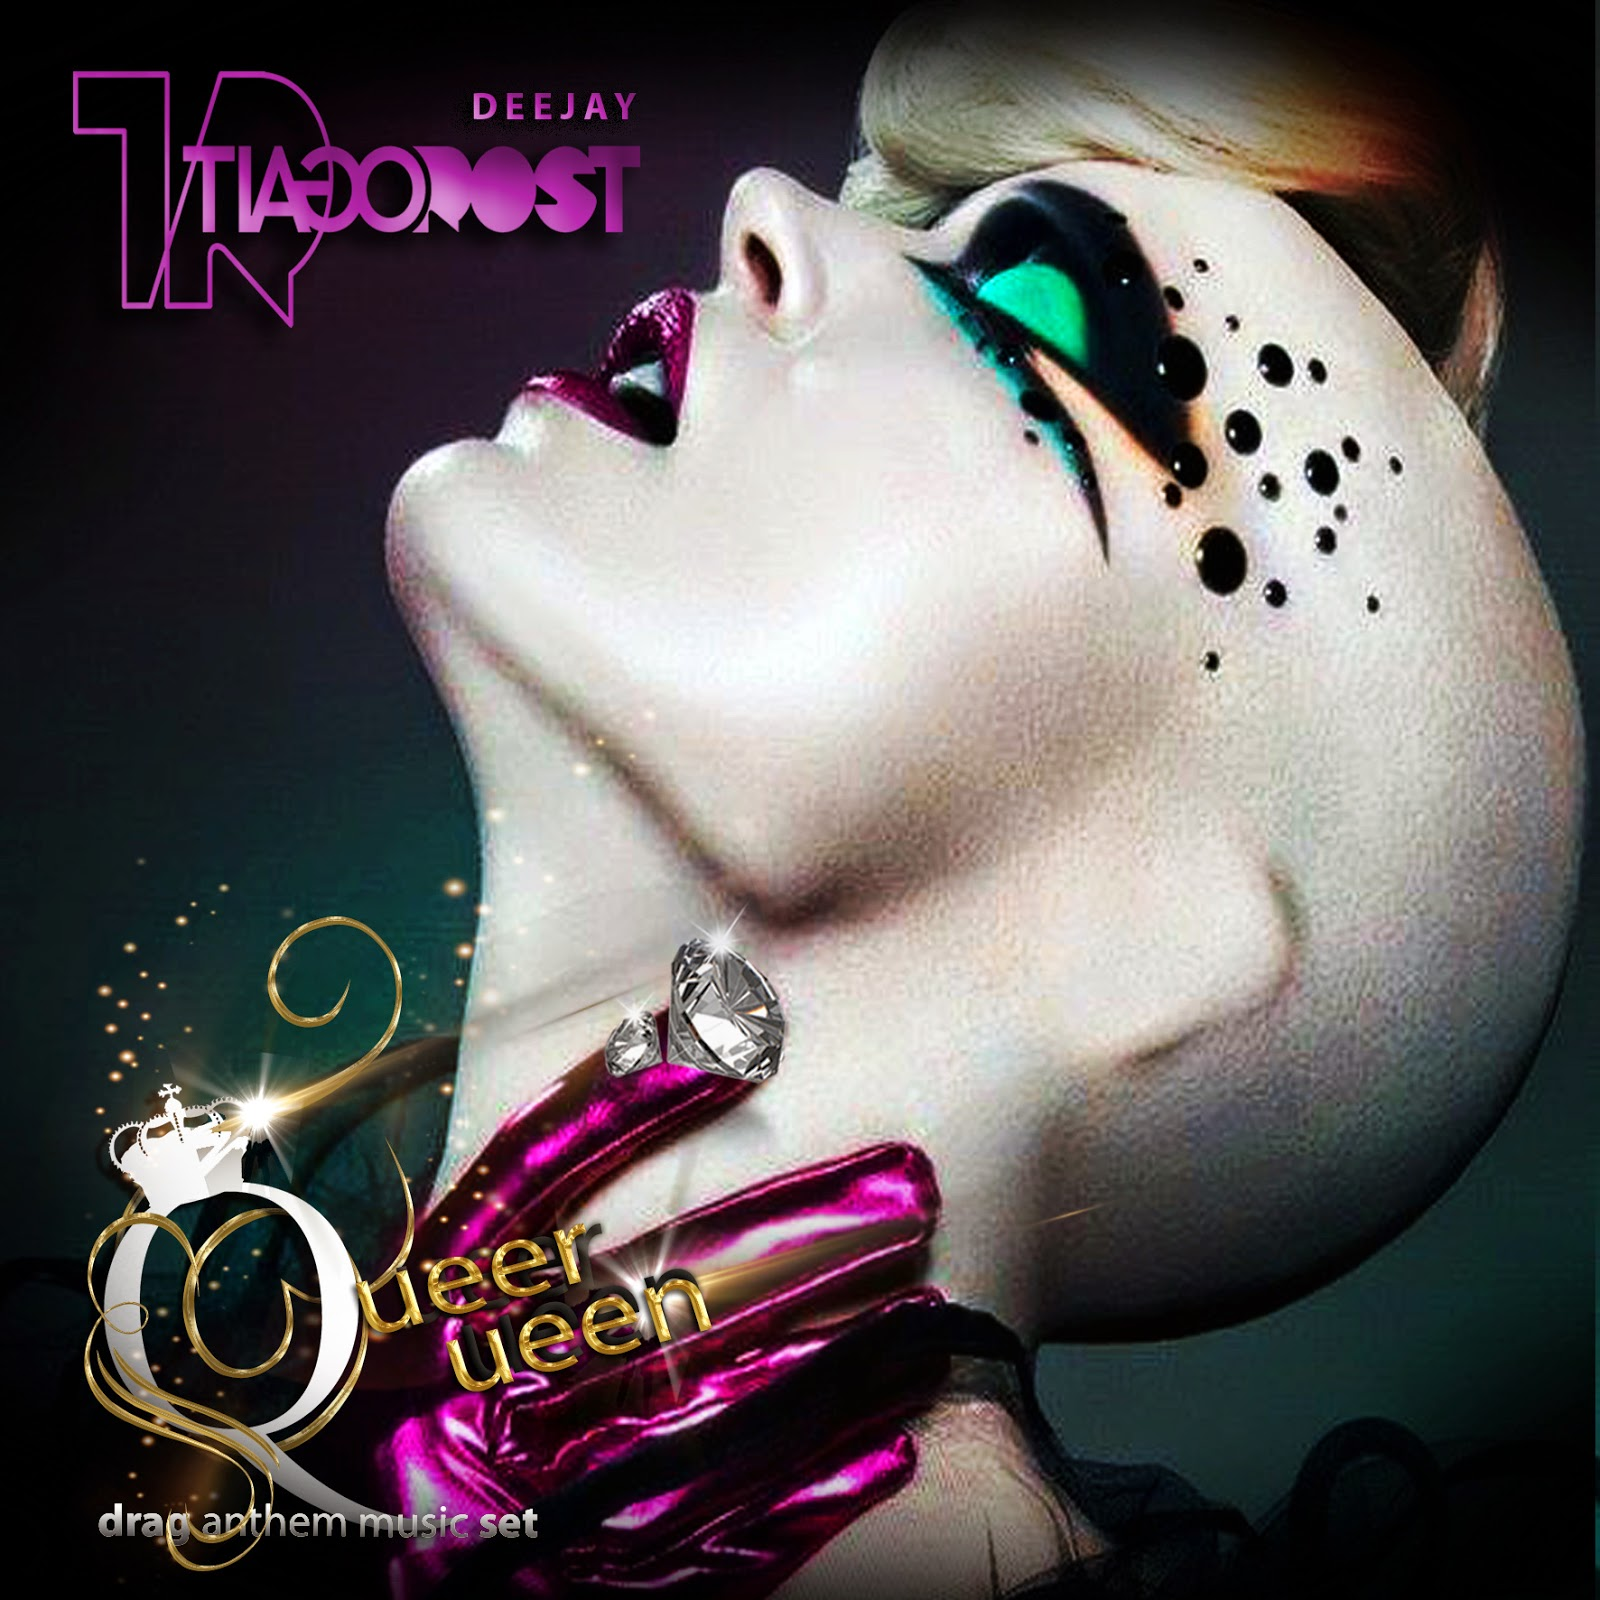 DJ Tiago Rost - QUEER QUEEN (Drag Anthem Music Set)